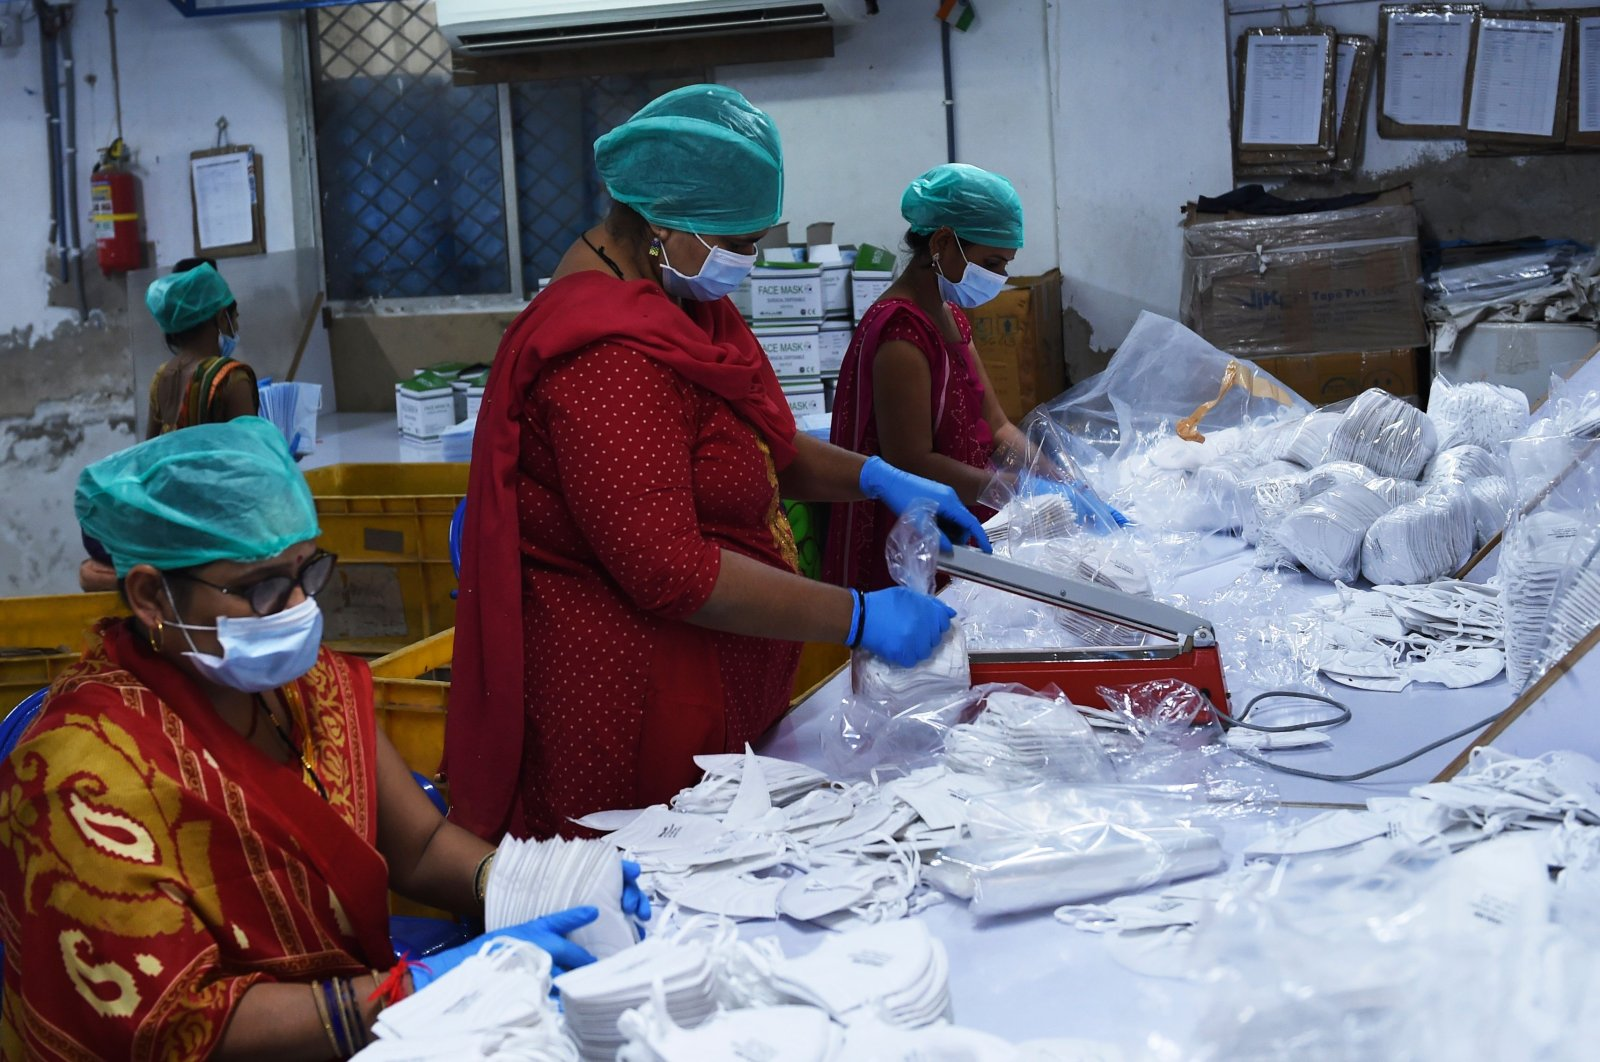 Employees wearing facemasks amid concerns of the spread of the COVID-19 coronavirus work at the production line of facemasks at Salus Products, a manufacturer of surgical disposable products, on the outskirts of Ahmedabad on March 12, 2020. (AFP Photo)